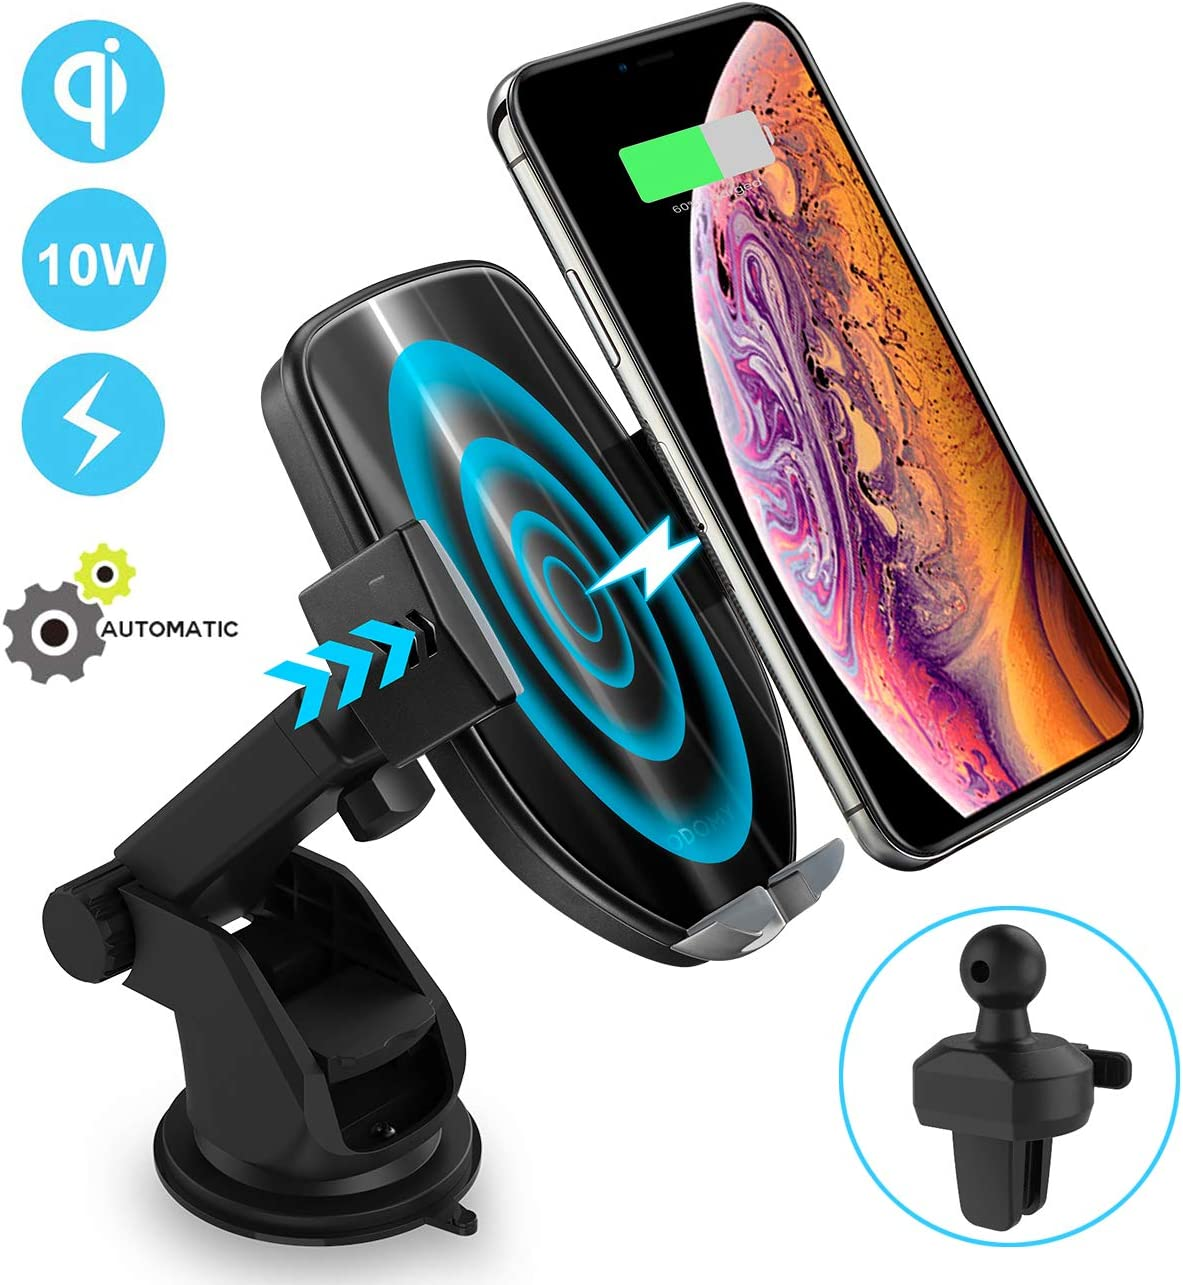 ODOMY Wireless Car Charger Mount, Auto Clamping 10W Fast Charging Qi Car Phone Holder Air Vent Dashboard Compatible with iPhone XsMaxXXR88